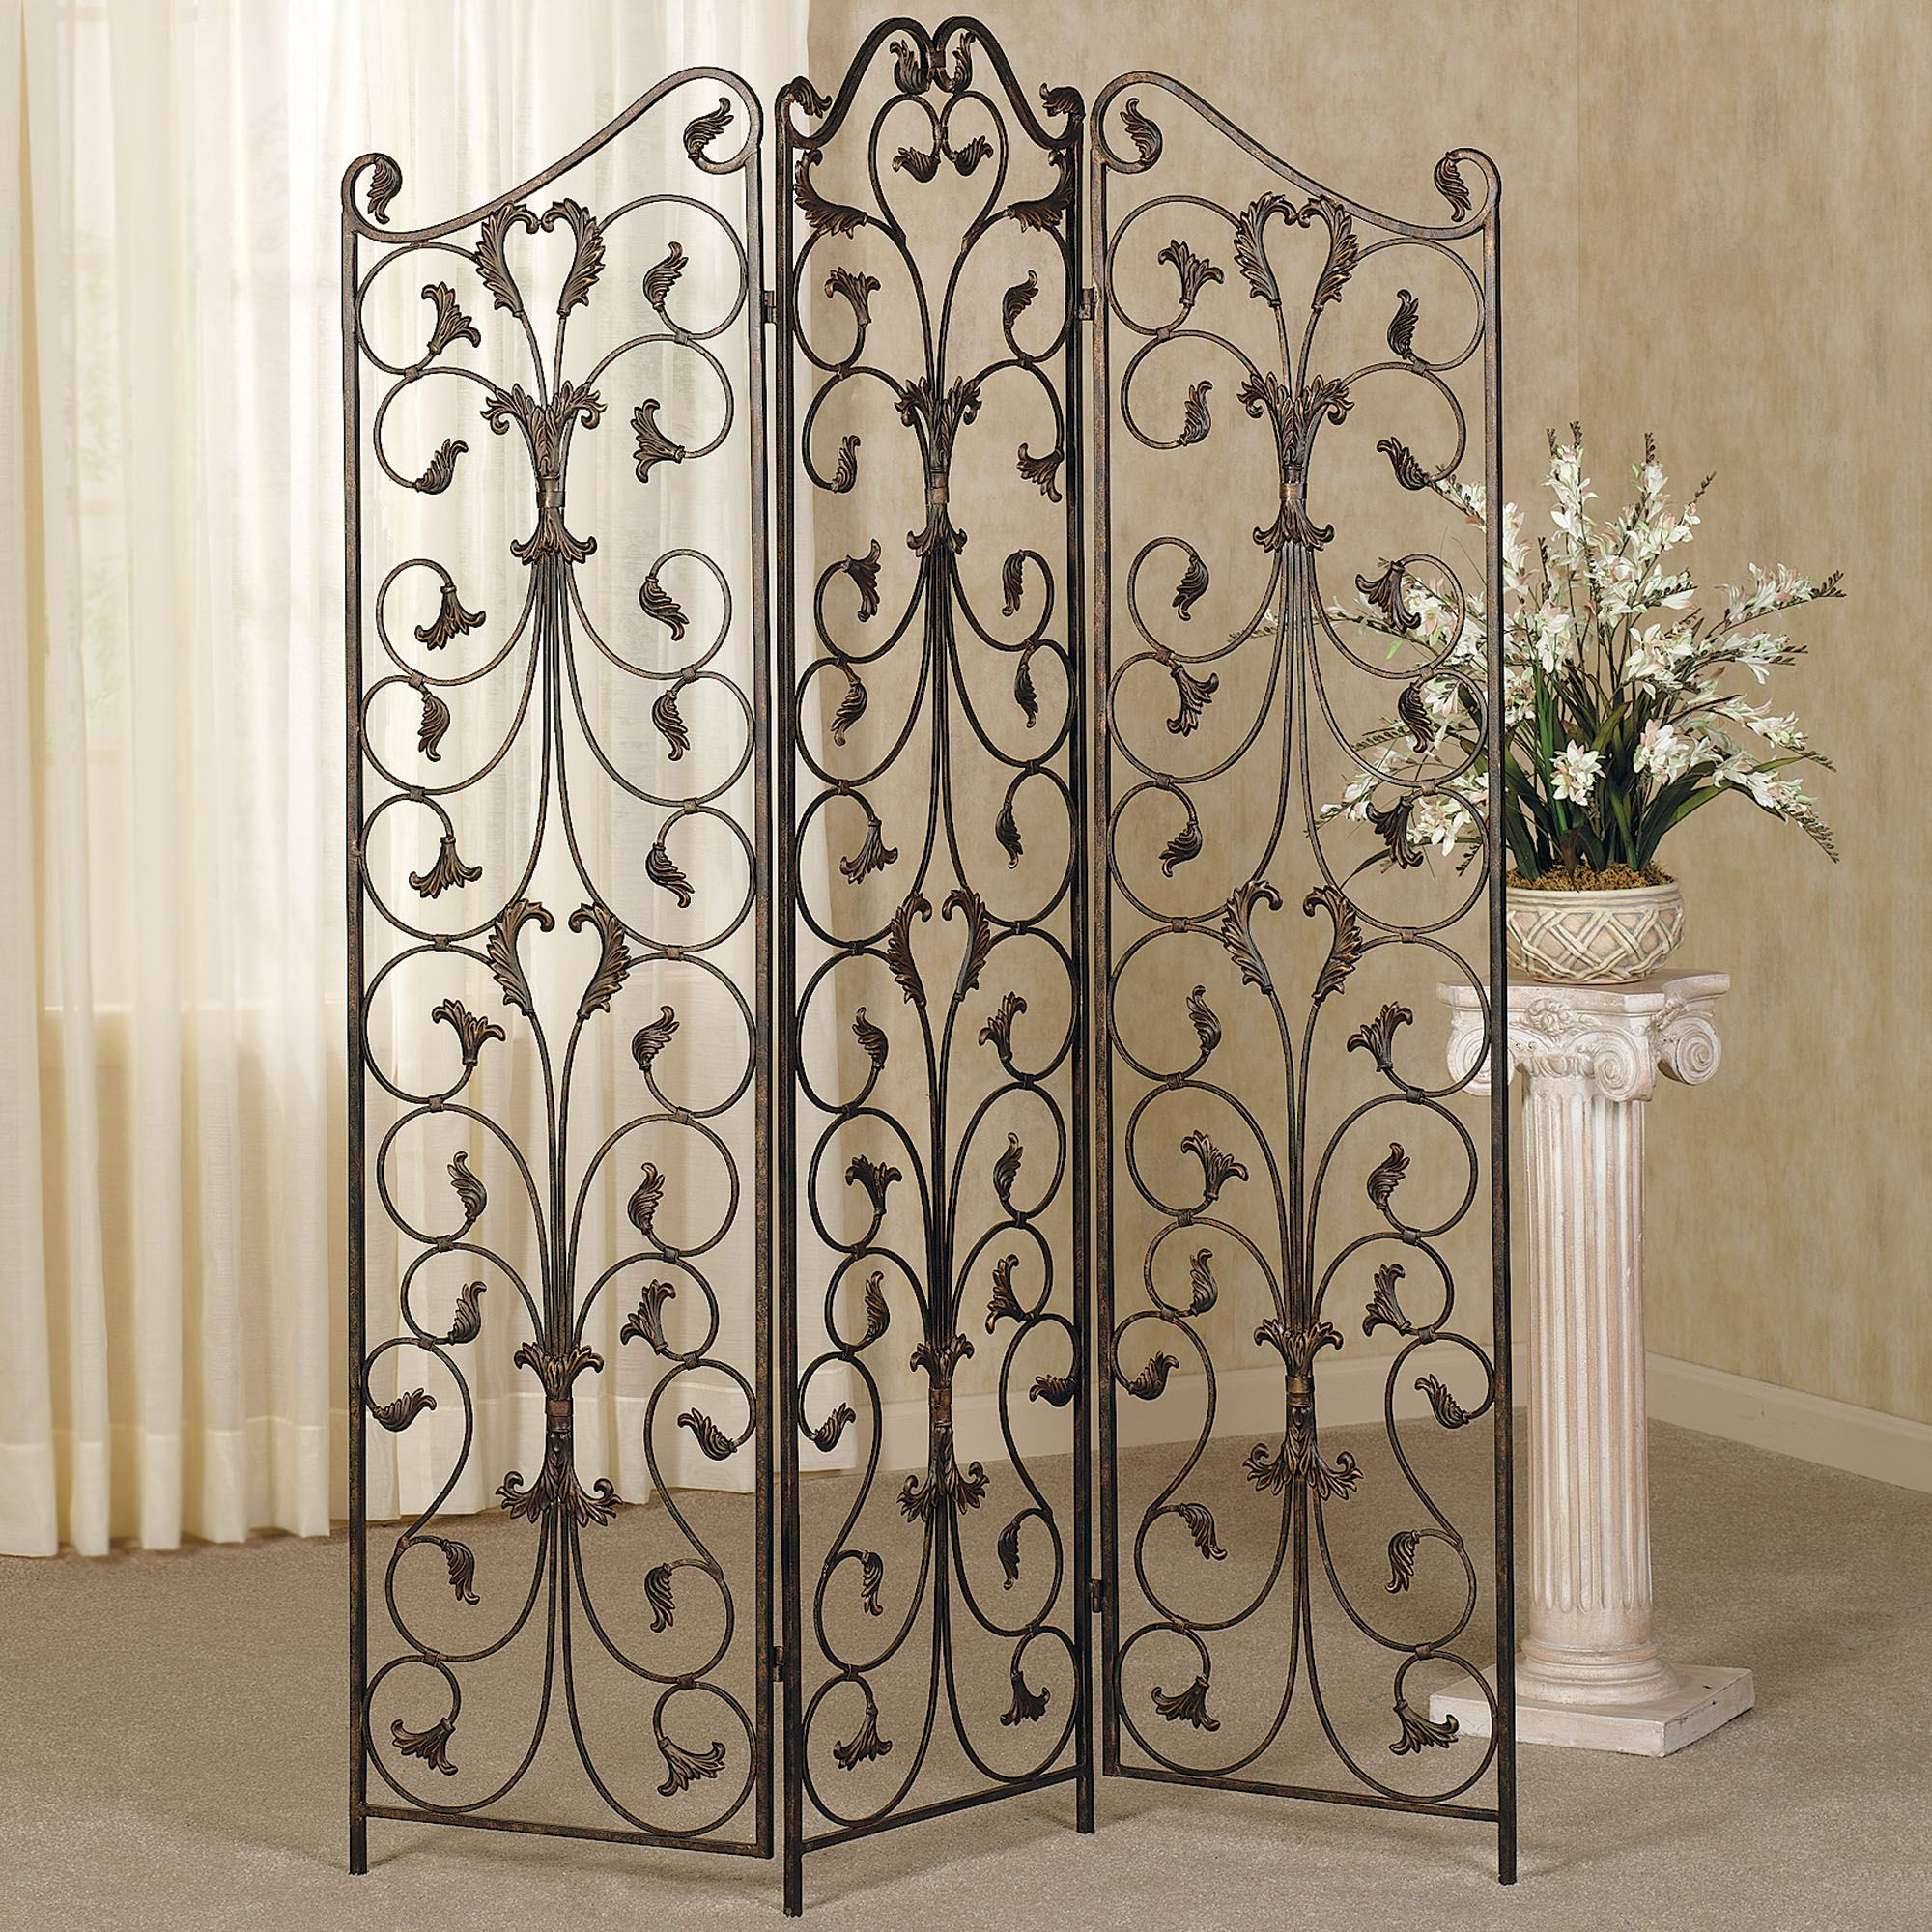 iron room pinterest wooden divider pin and decor wrought ideas